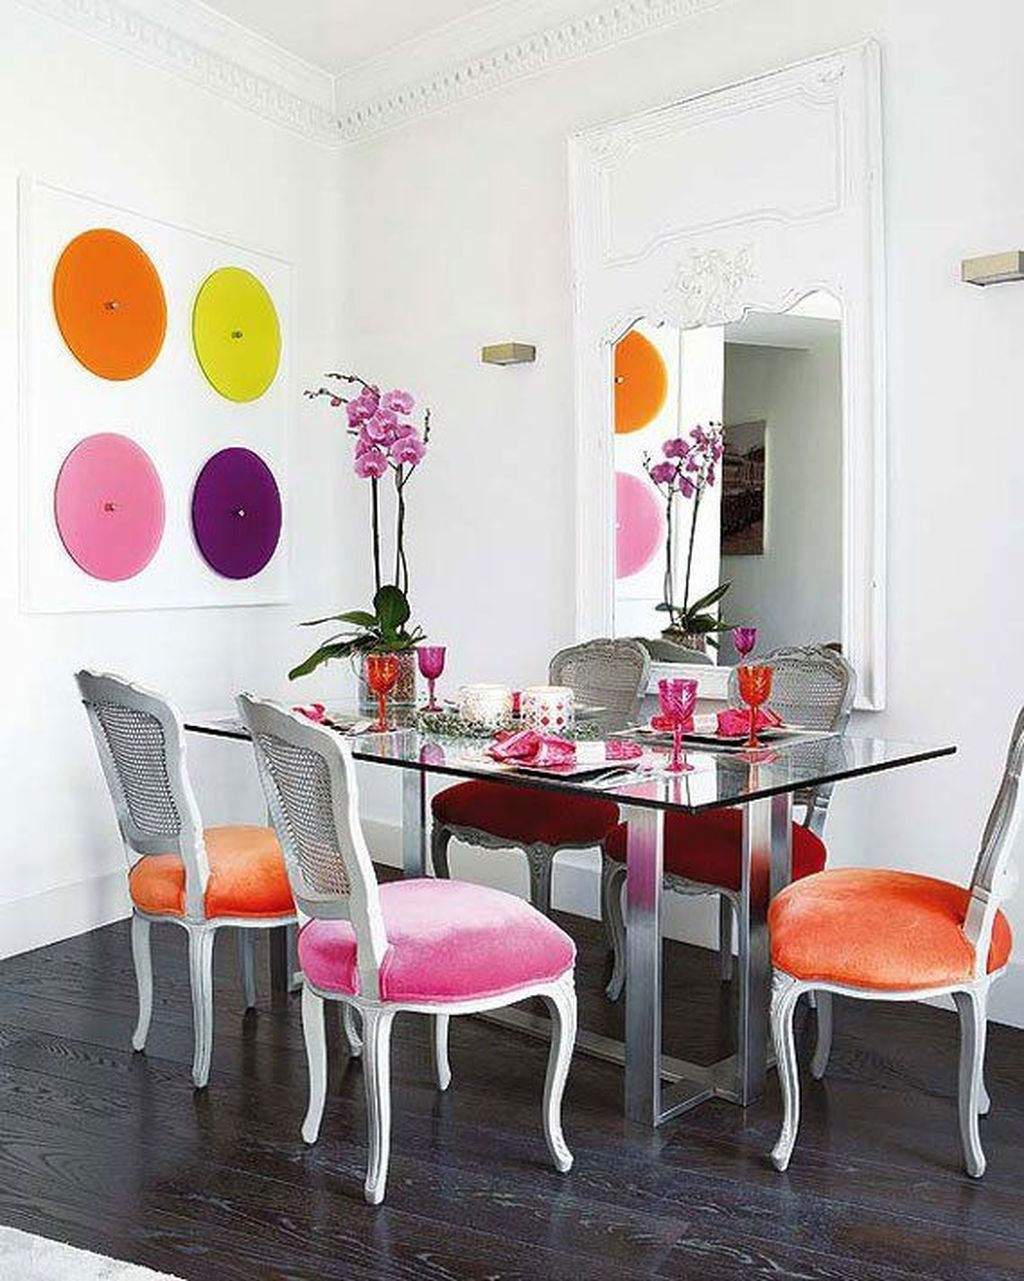 Stunning Dining Room Design Ideas With Multicolored Chairs02